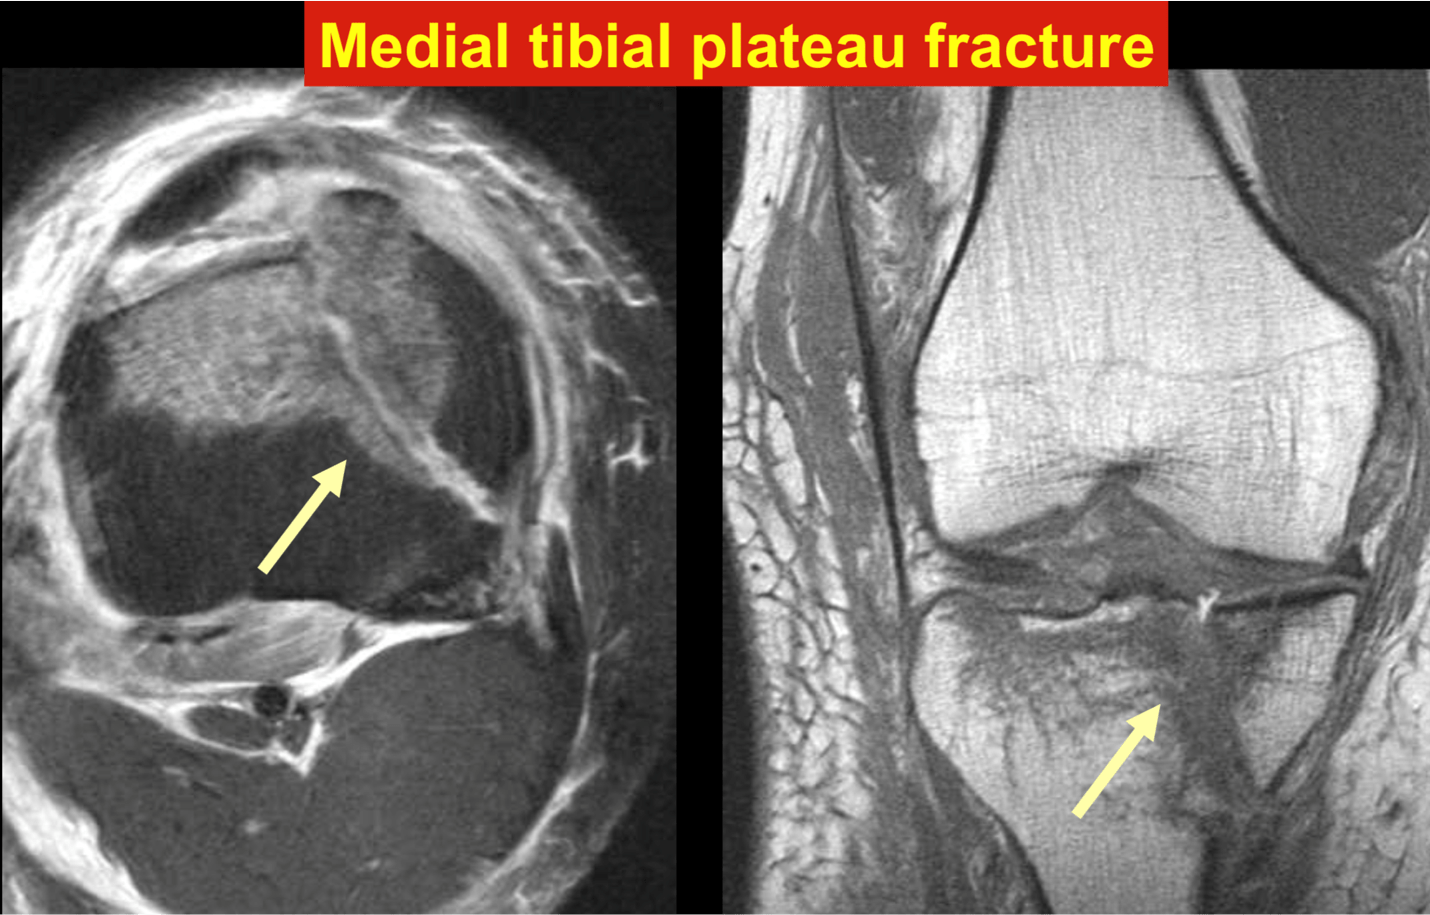 Medial tibial plateau fracture